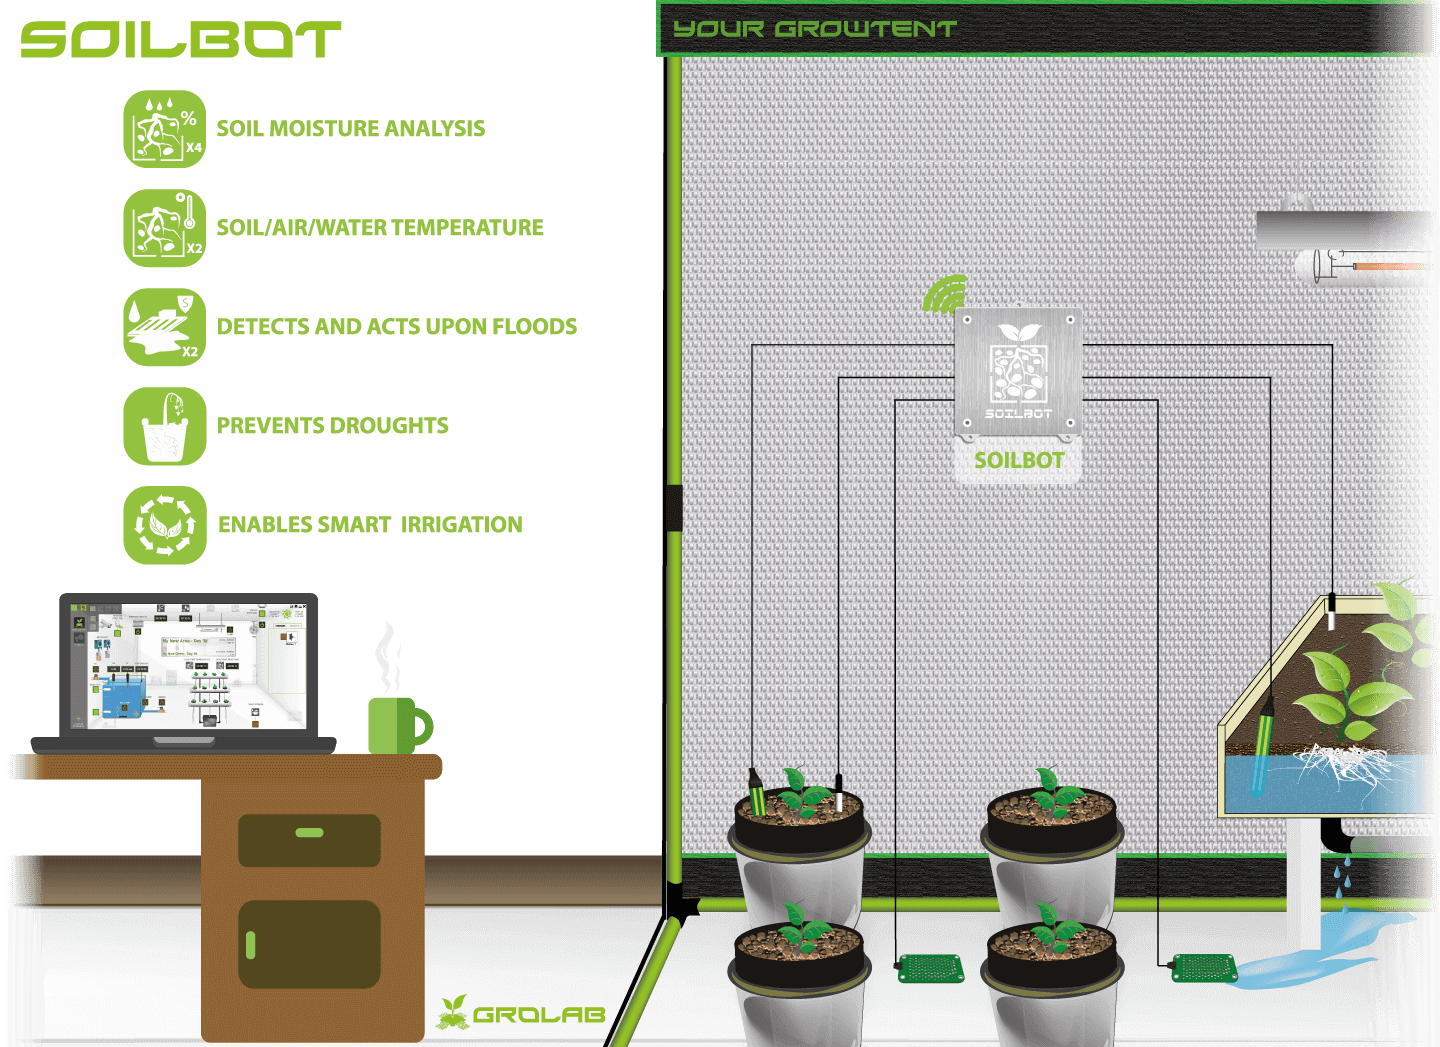 SoilBot configuration schematic example, the GroLab™ grow controller substrate analyzer, measure soil moisture, temperature and flood detection in two distinct grows